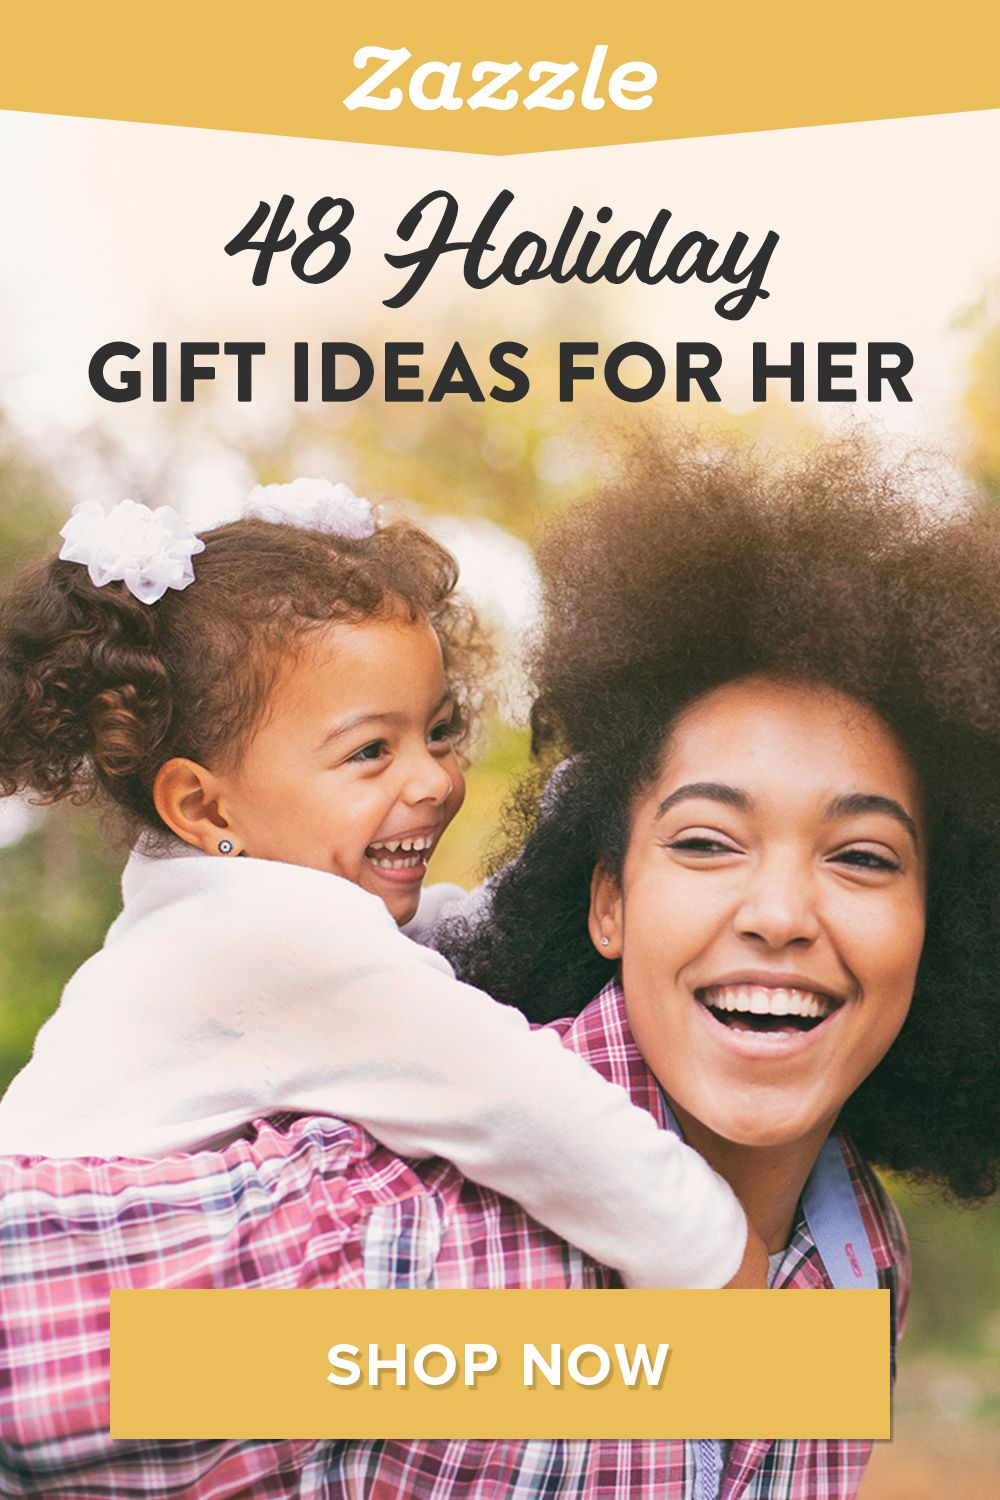 Looking on the perfect gift for mom, grandma, or sister? Check out our gift guide that features 48 ideas for her. Shop Zazzle for all things holiday including holiday cards, decor, apparel and more.